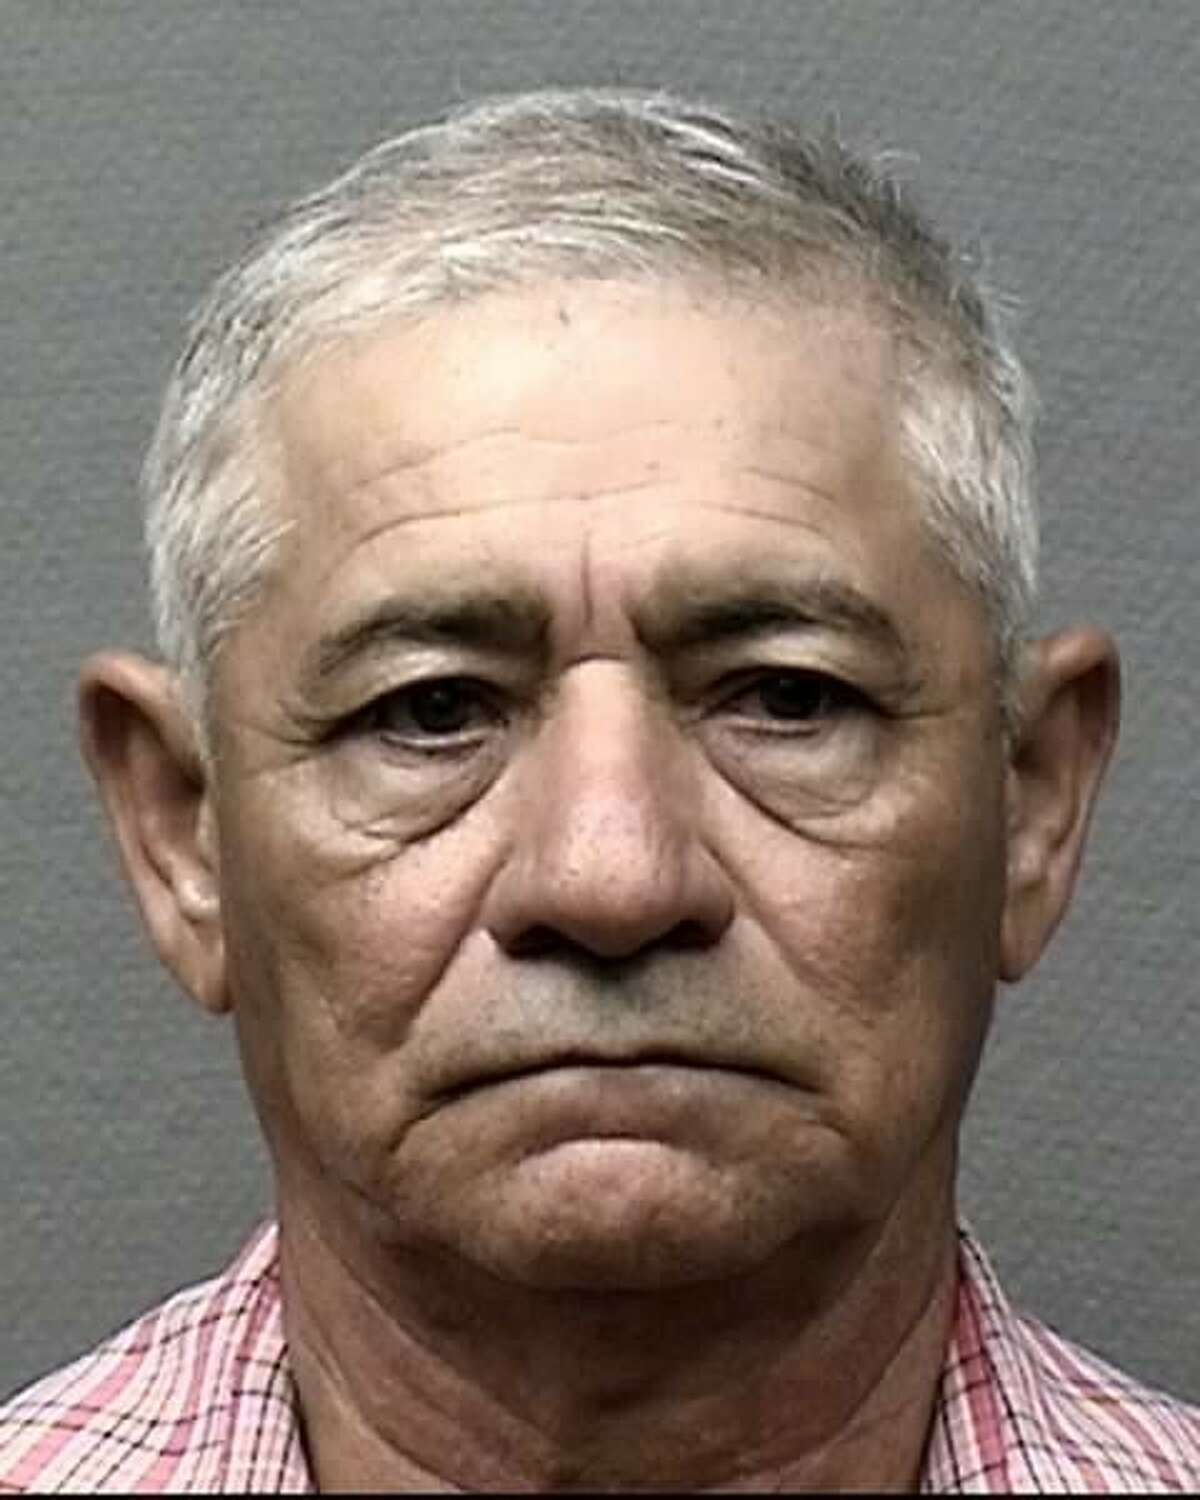 Rogelio Alberto Guardado, 69, was arrested Monday and charged with aggravated assault with a deadly weapon in connection to the incident which occurred about 11 p.m. Sept. 11 at 6767 Long Drive in southeast Houston. according to the Houston Police Department.